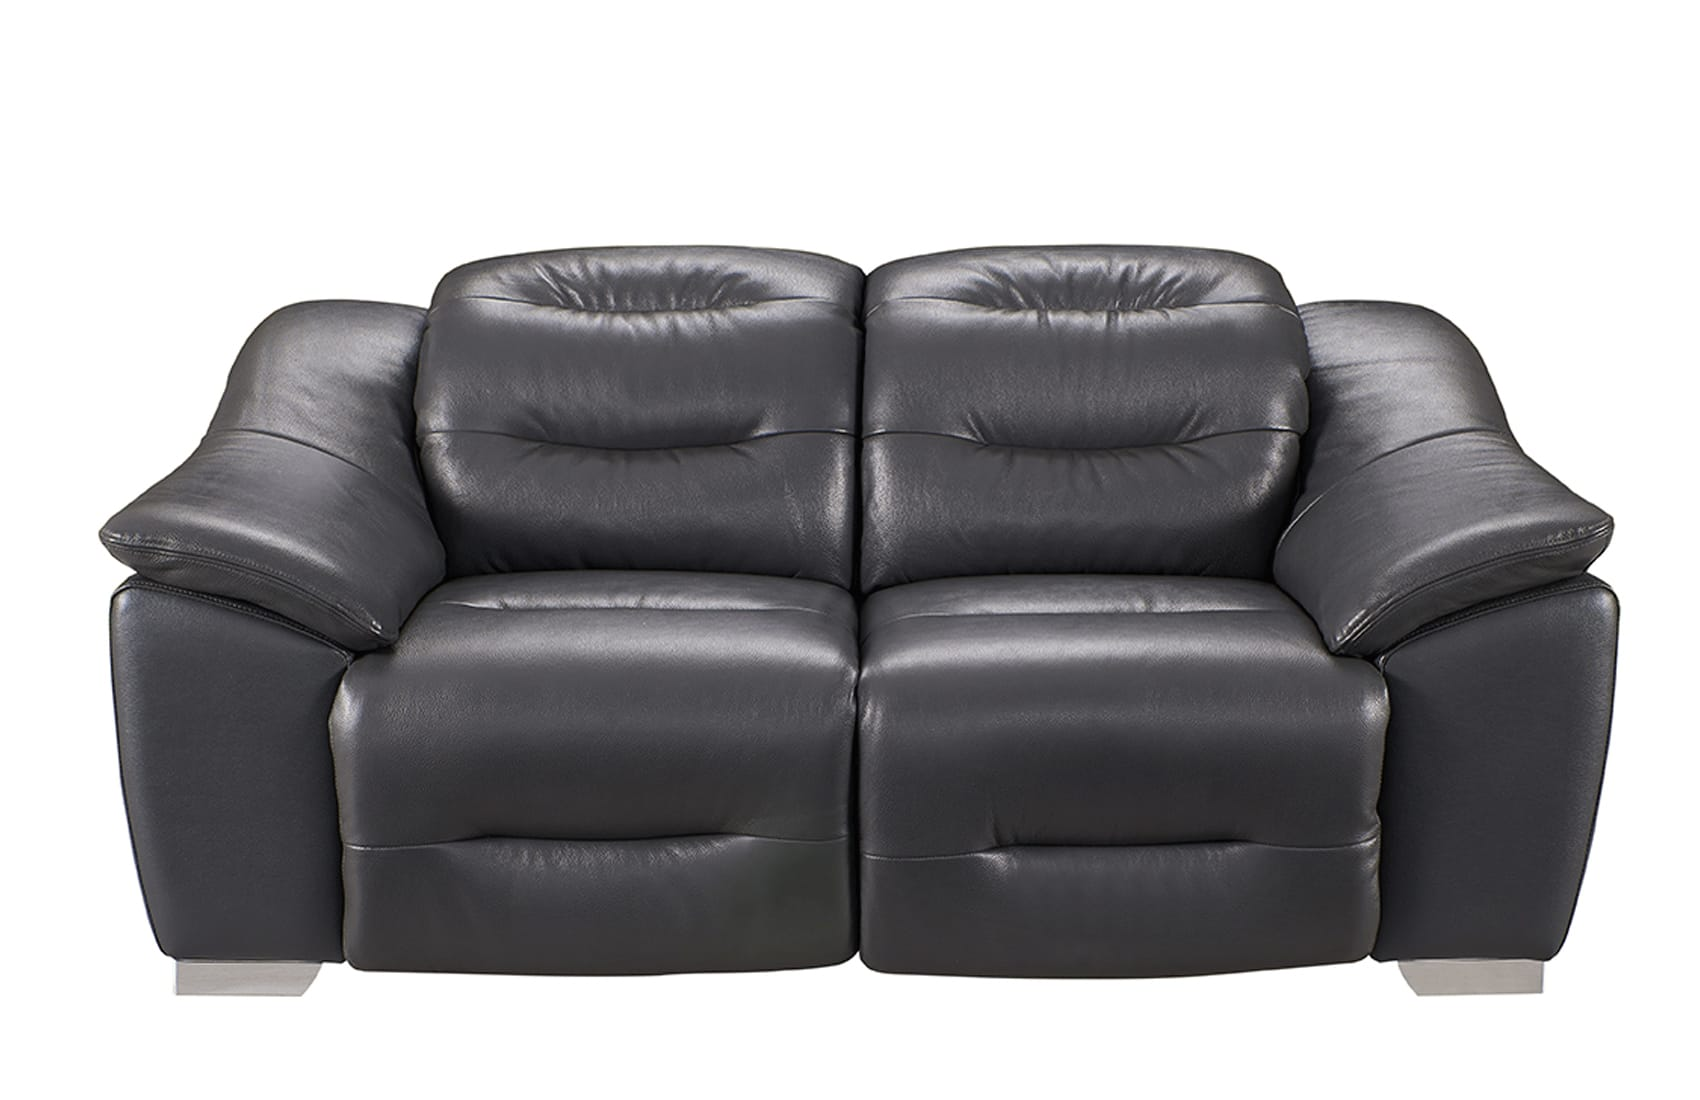 Groovy 972 Charcoal Leather Loveseat W 2 Electric Recliner By Esf Gmtry Best Dining Table And Chair Ideas Images Gmtryco